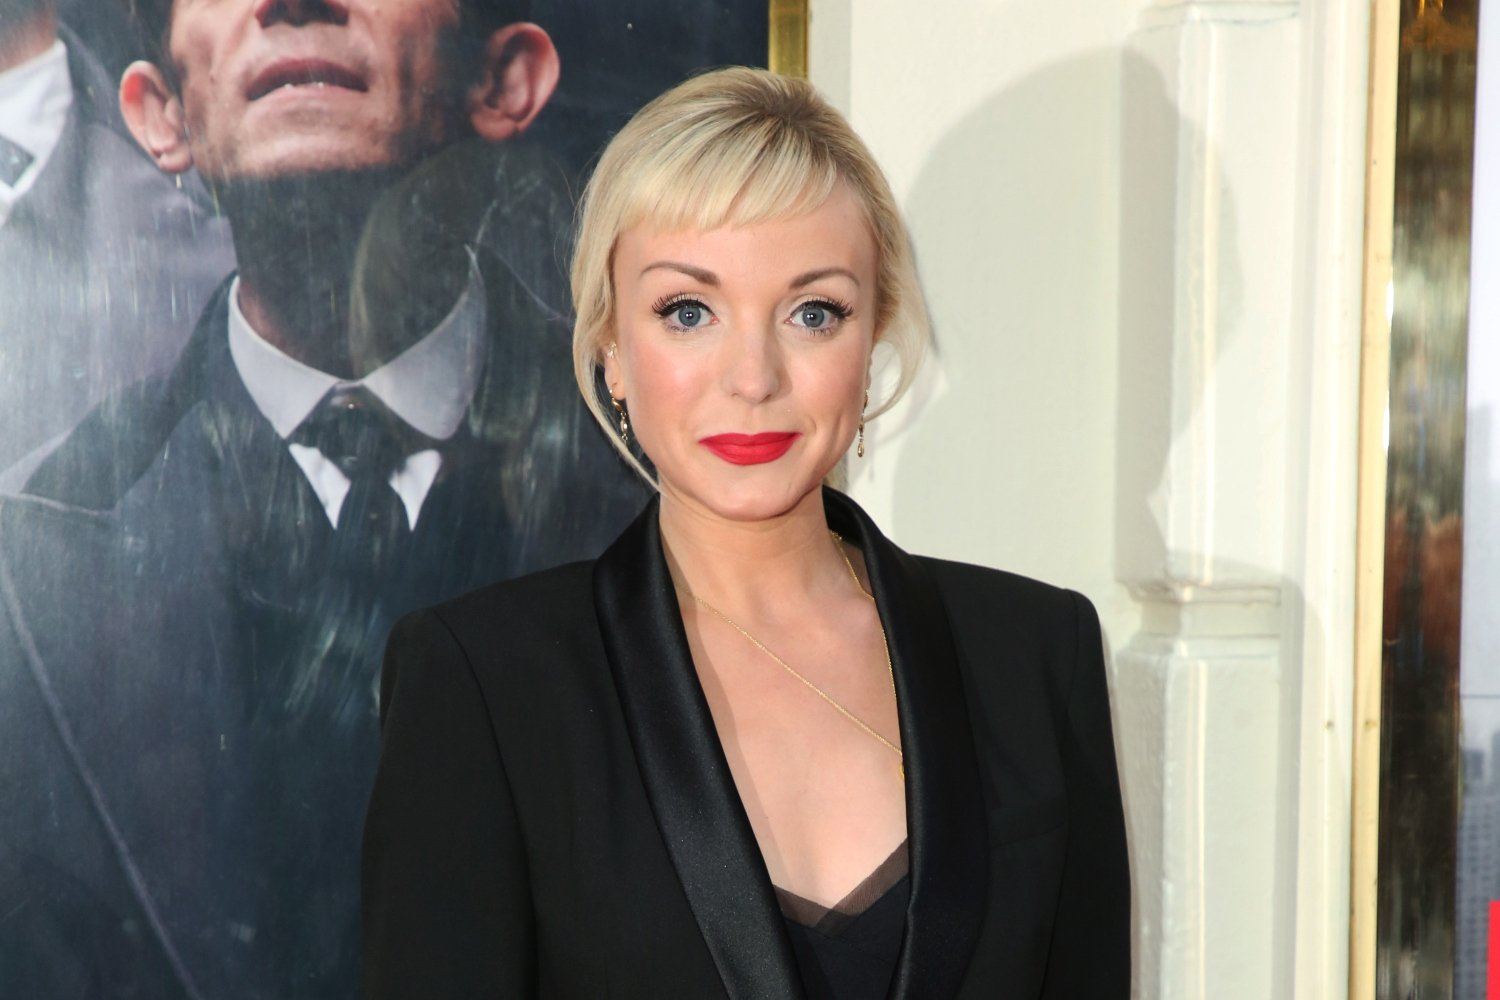 Call The Midwife star Helen George used to be Elton John's backing singer